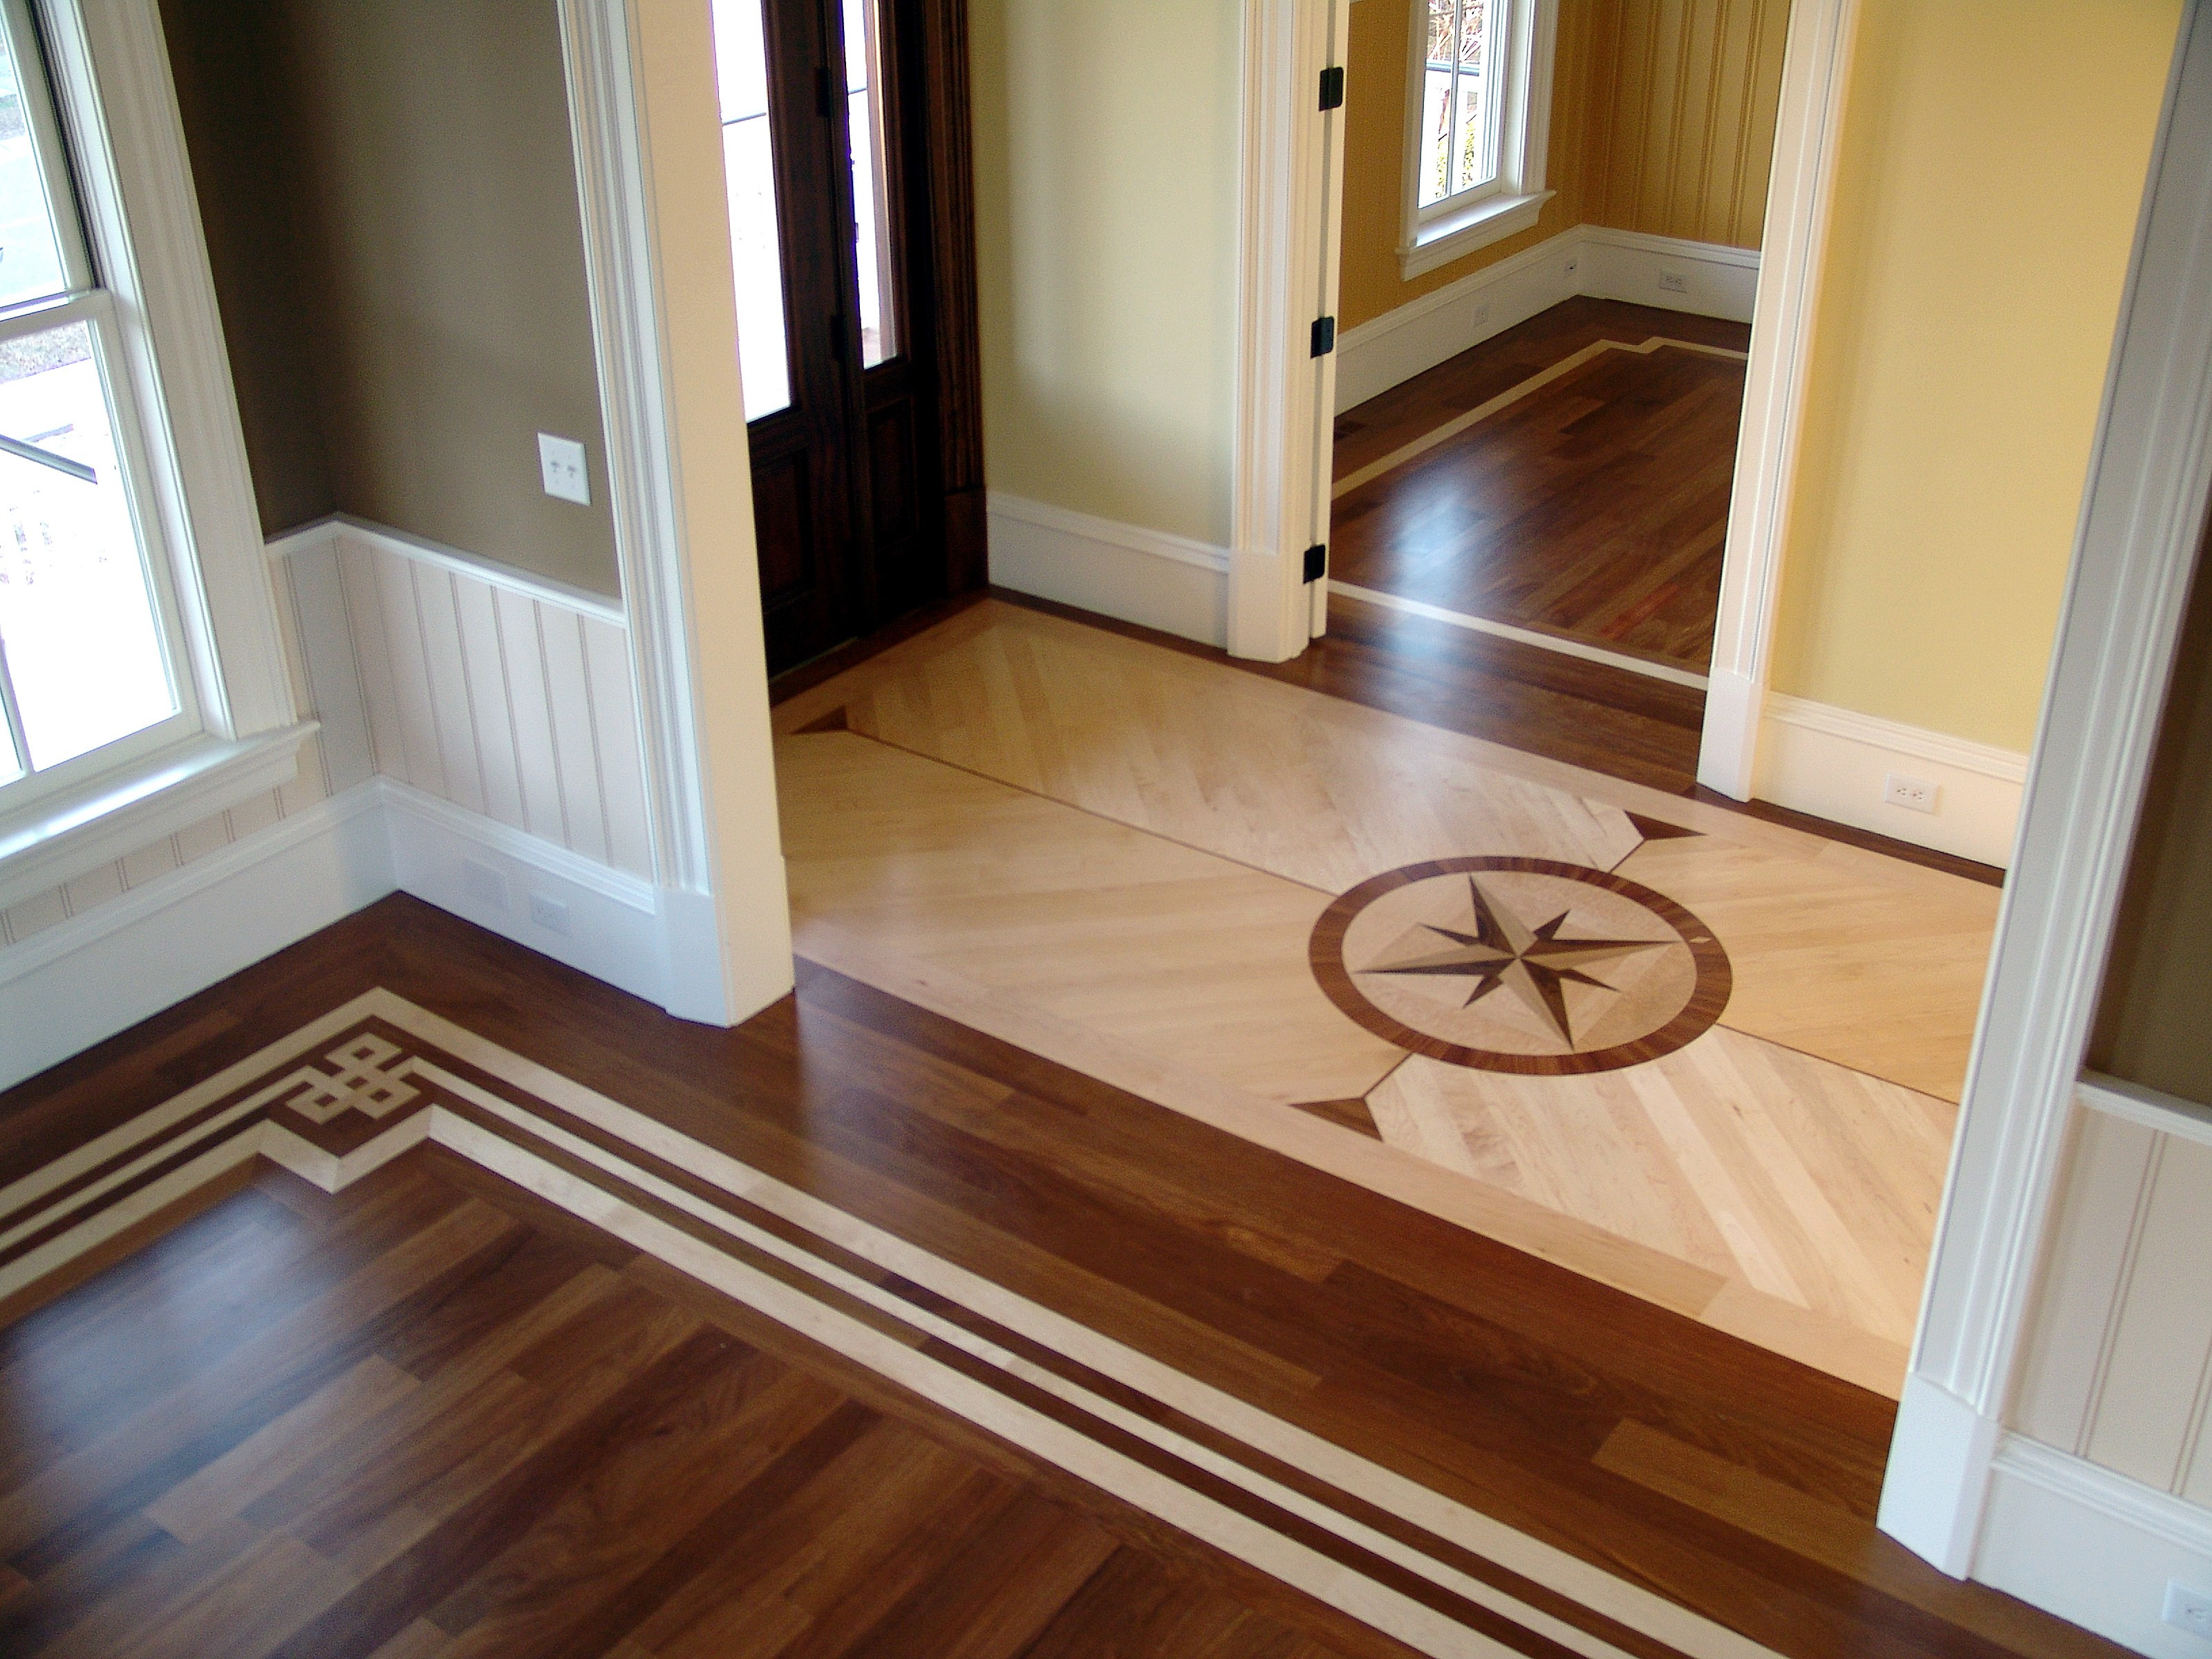 17 Ideal How Hard is It to Sand and Refinish Hardwood Floors 2021 free download how hard is it to sand and refinish hardwood floors of imperial wood floors madison wi hardwood floors hardwood floor regarding home a